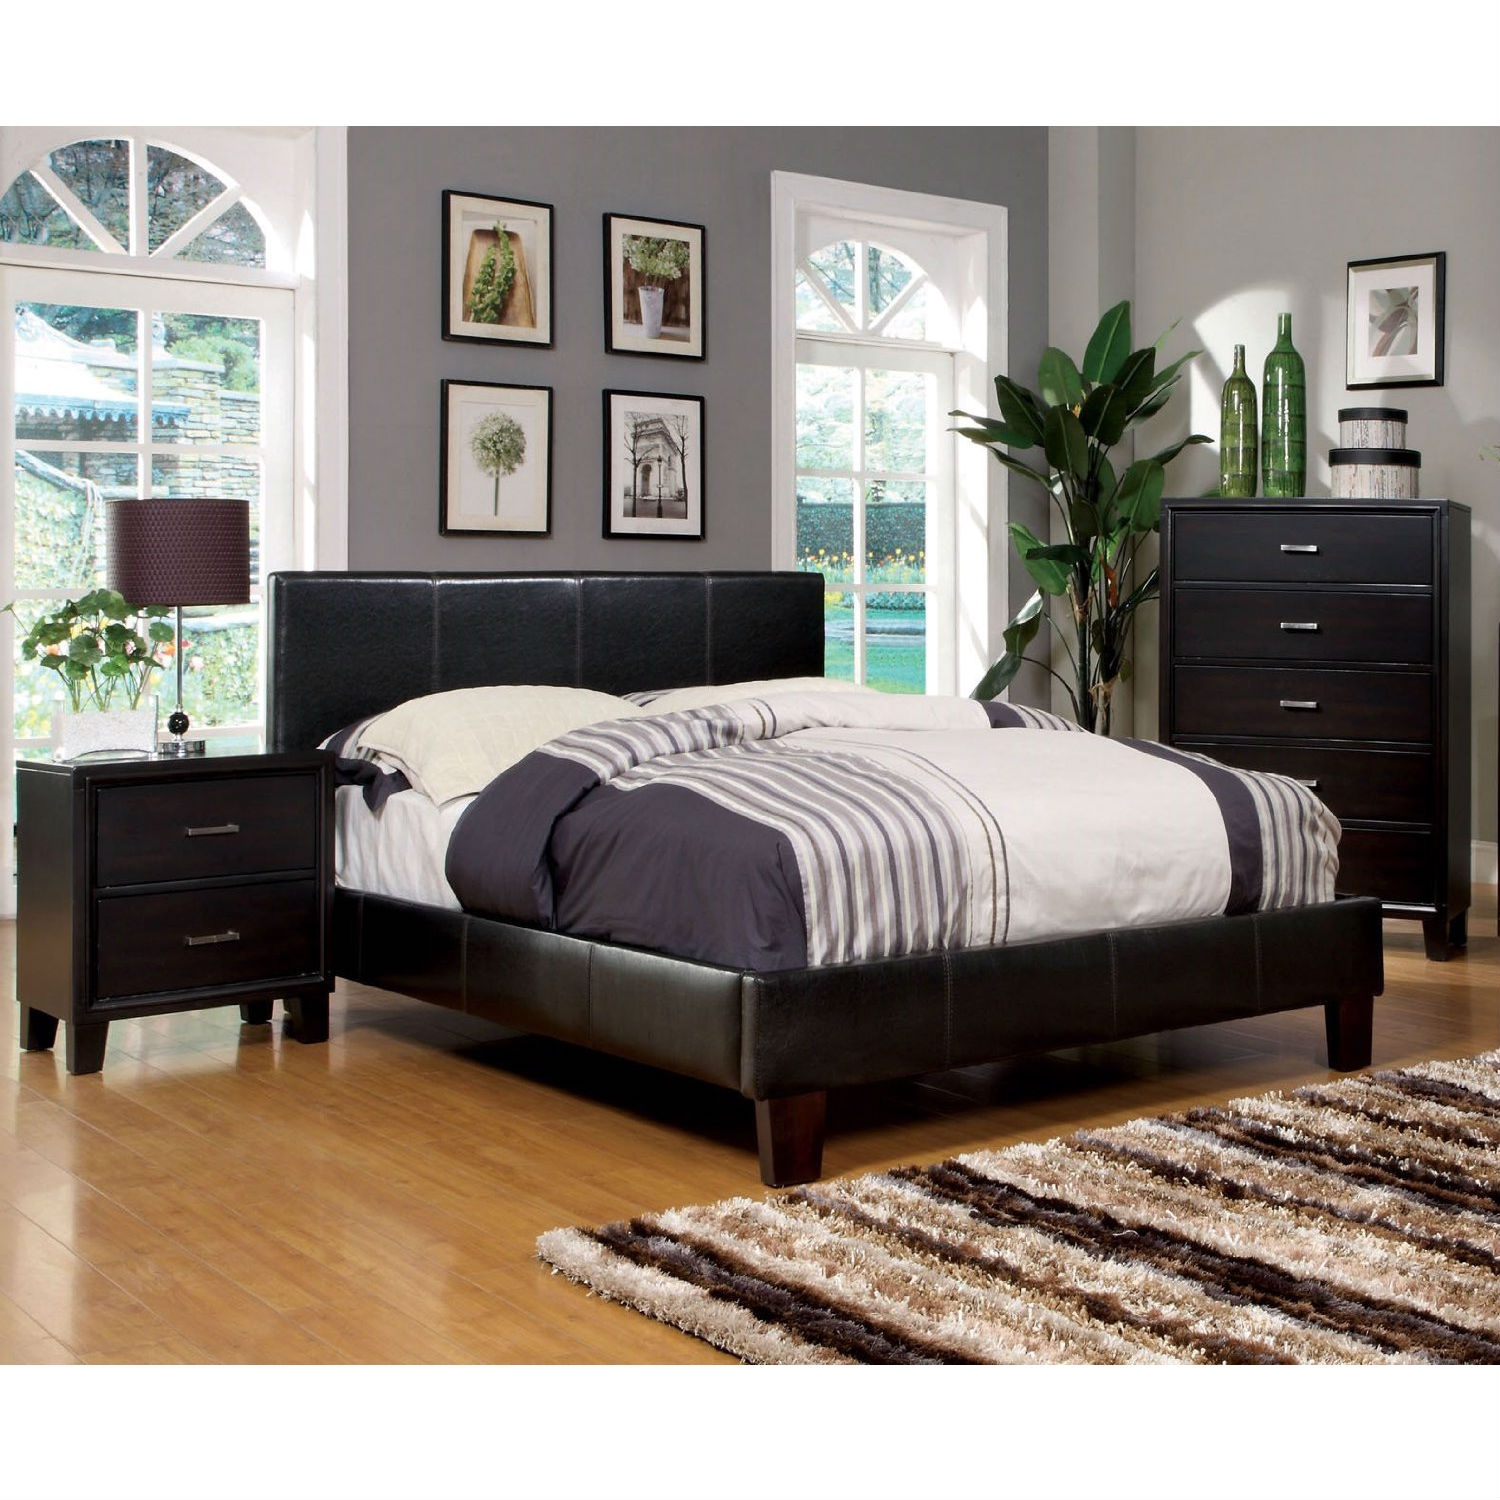 Queen size Upholstered Platform Bed with Headboard